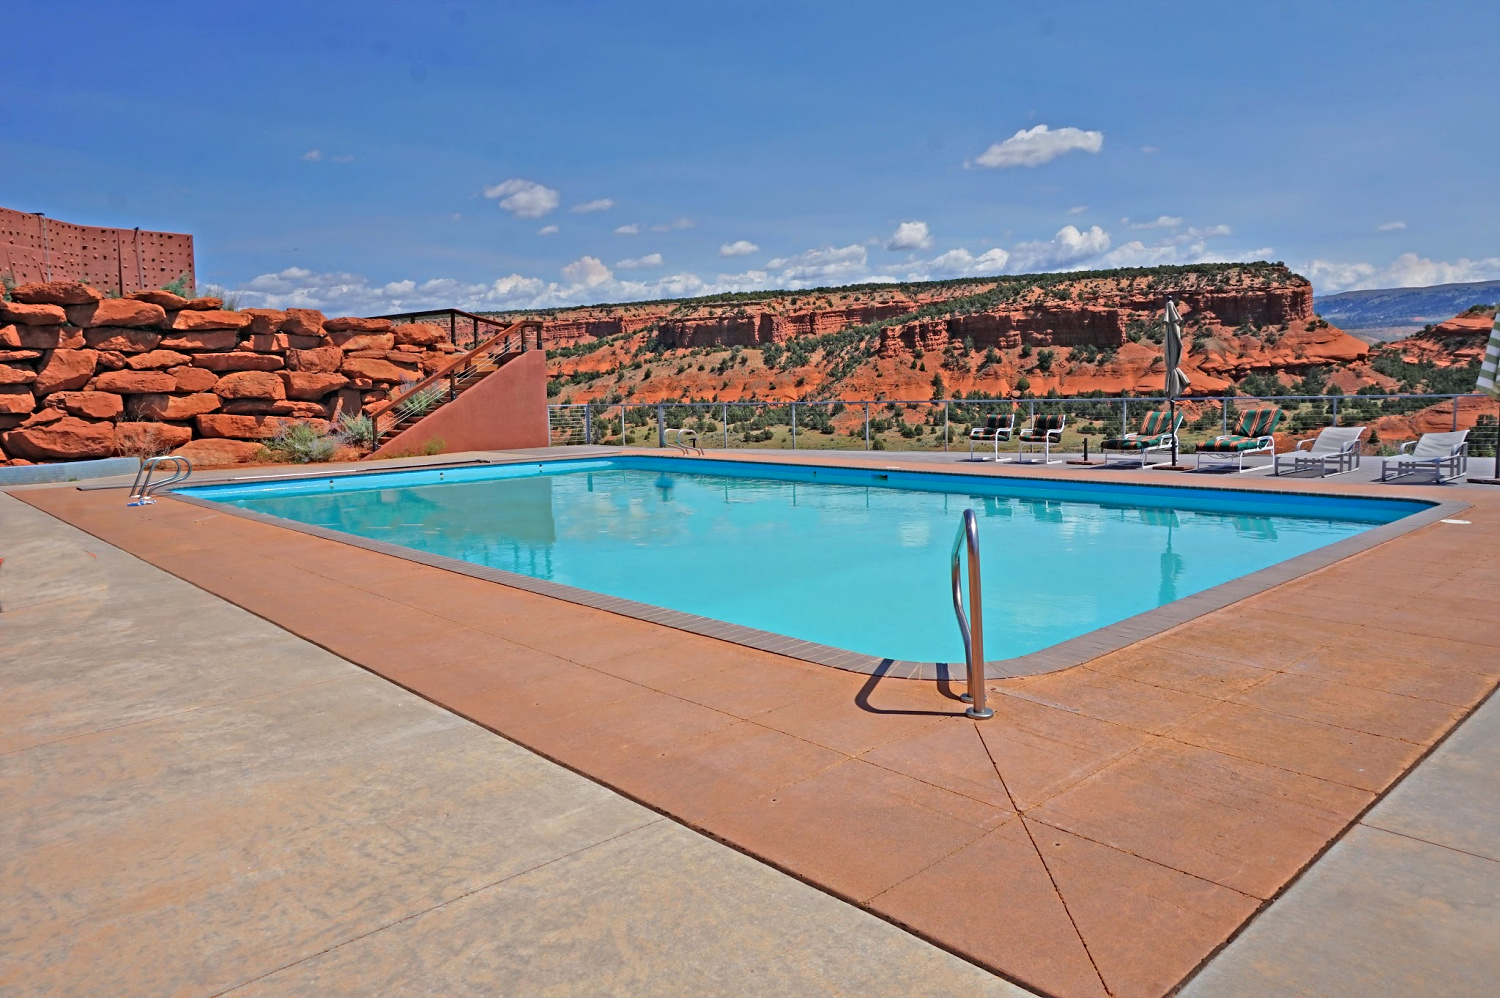 Wild West vacation in style. An outdoor pool at Red Reflet Ranch in Wyoming.